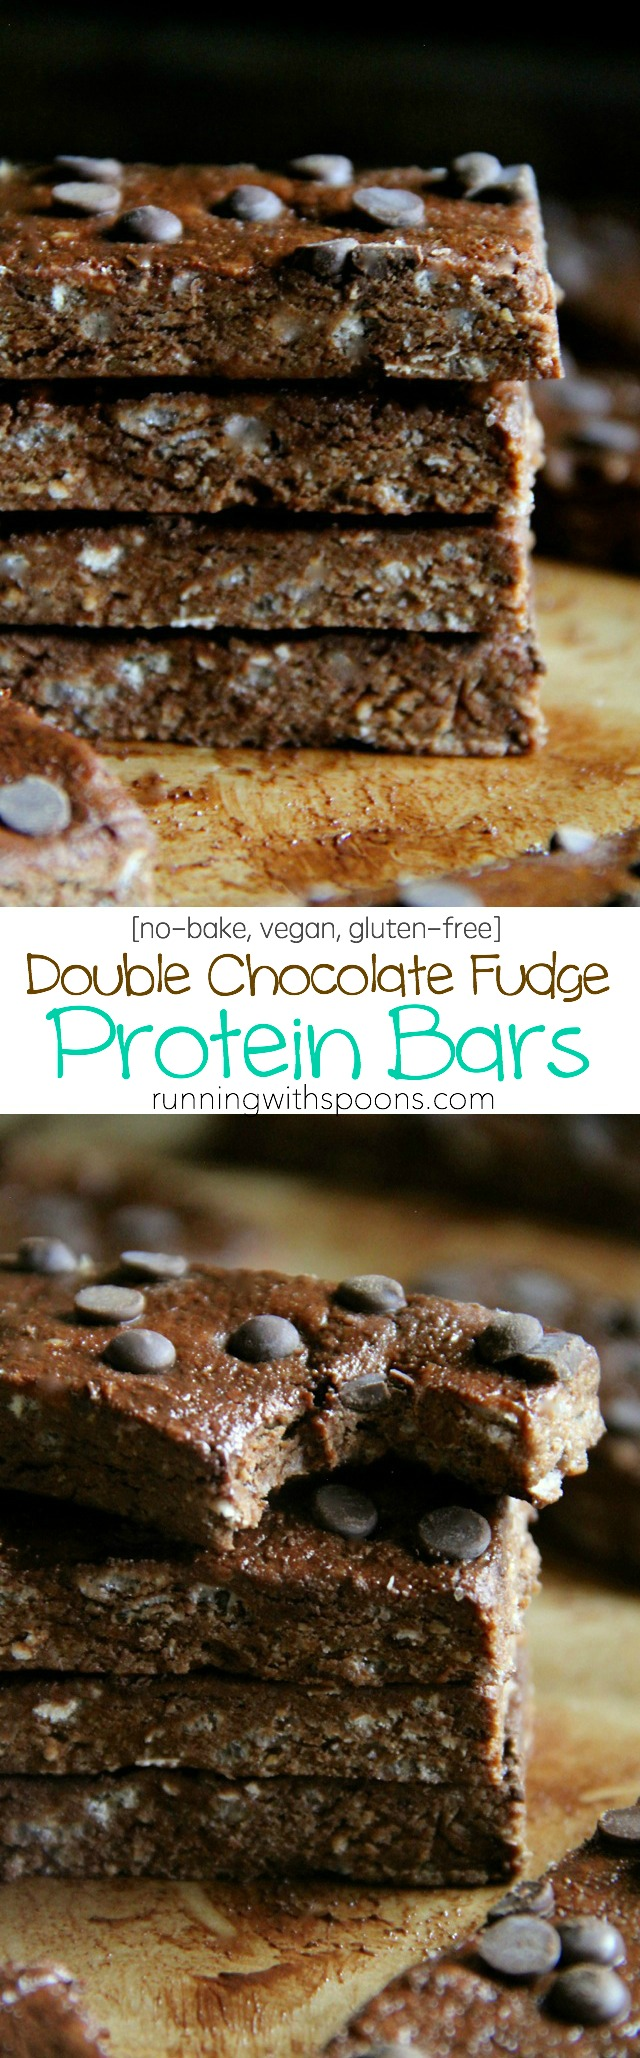 Double Chocolate Fudge Protein Bars -- these soft and fudgy no-bake chocolate bars are vegan, gluten-free, and make a PERFECT healthy snack! || runningwithspoons.com